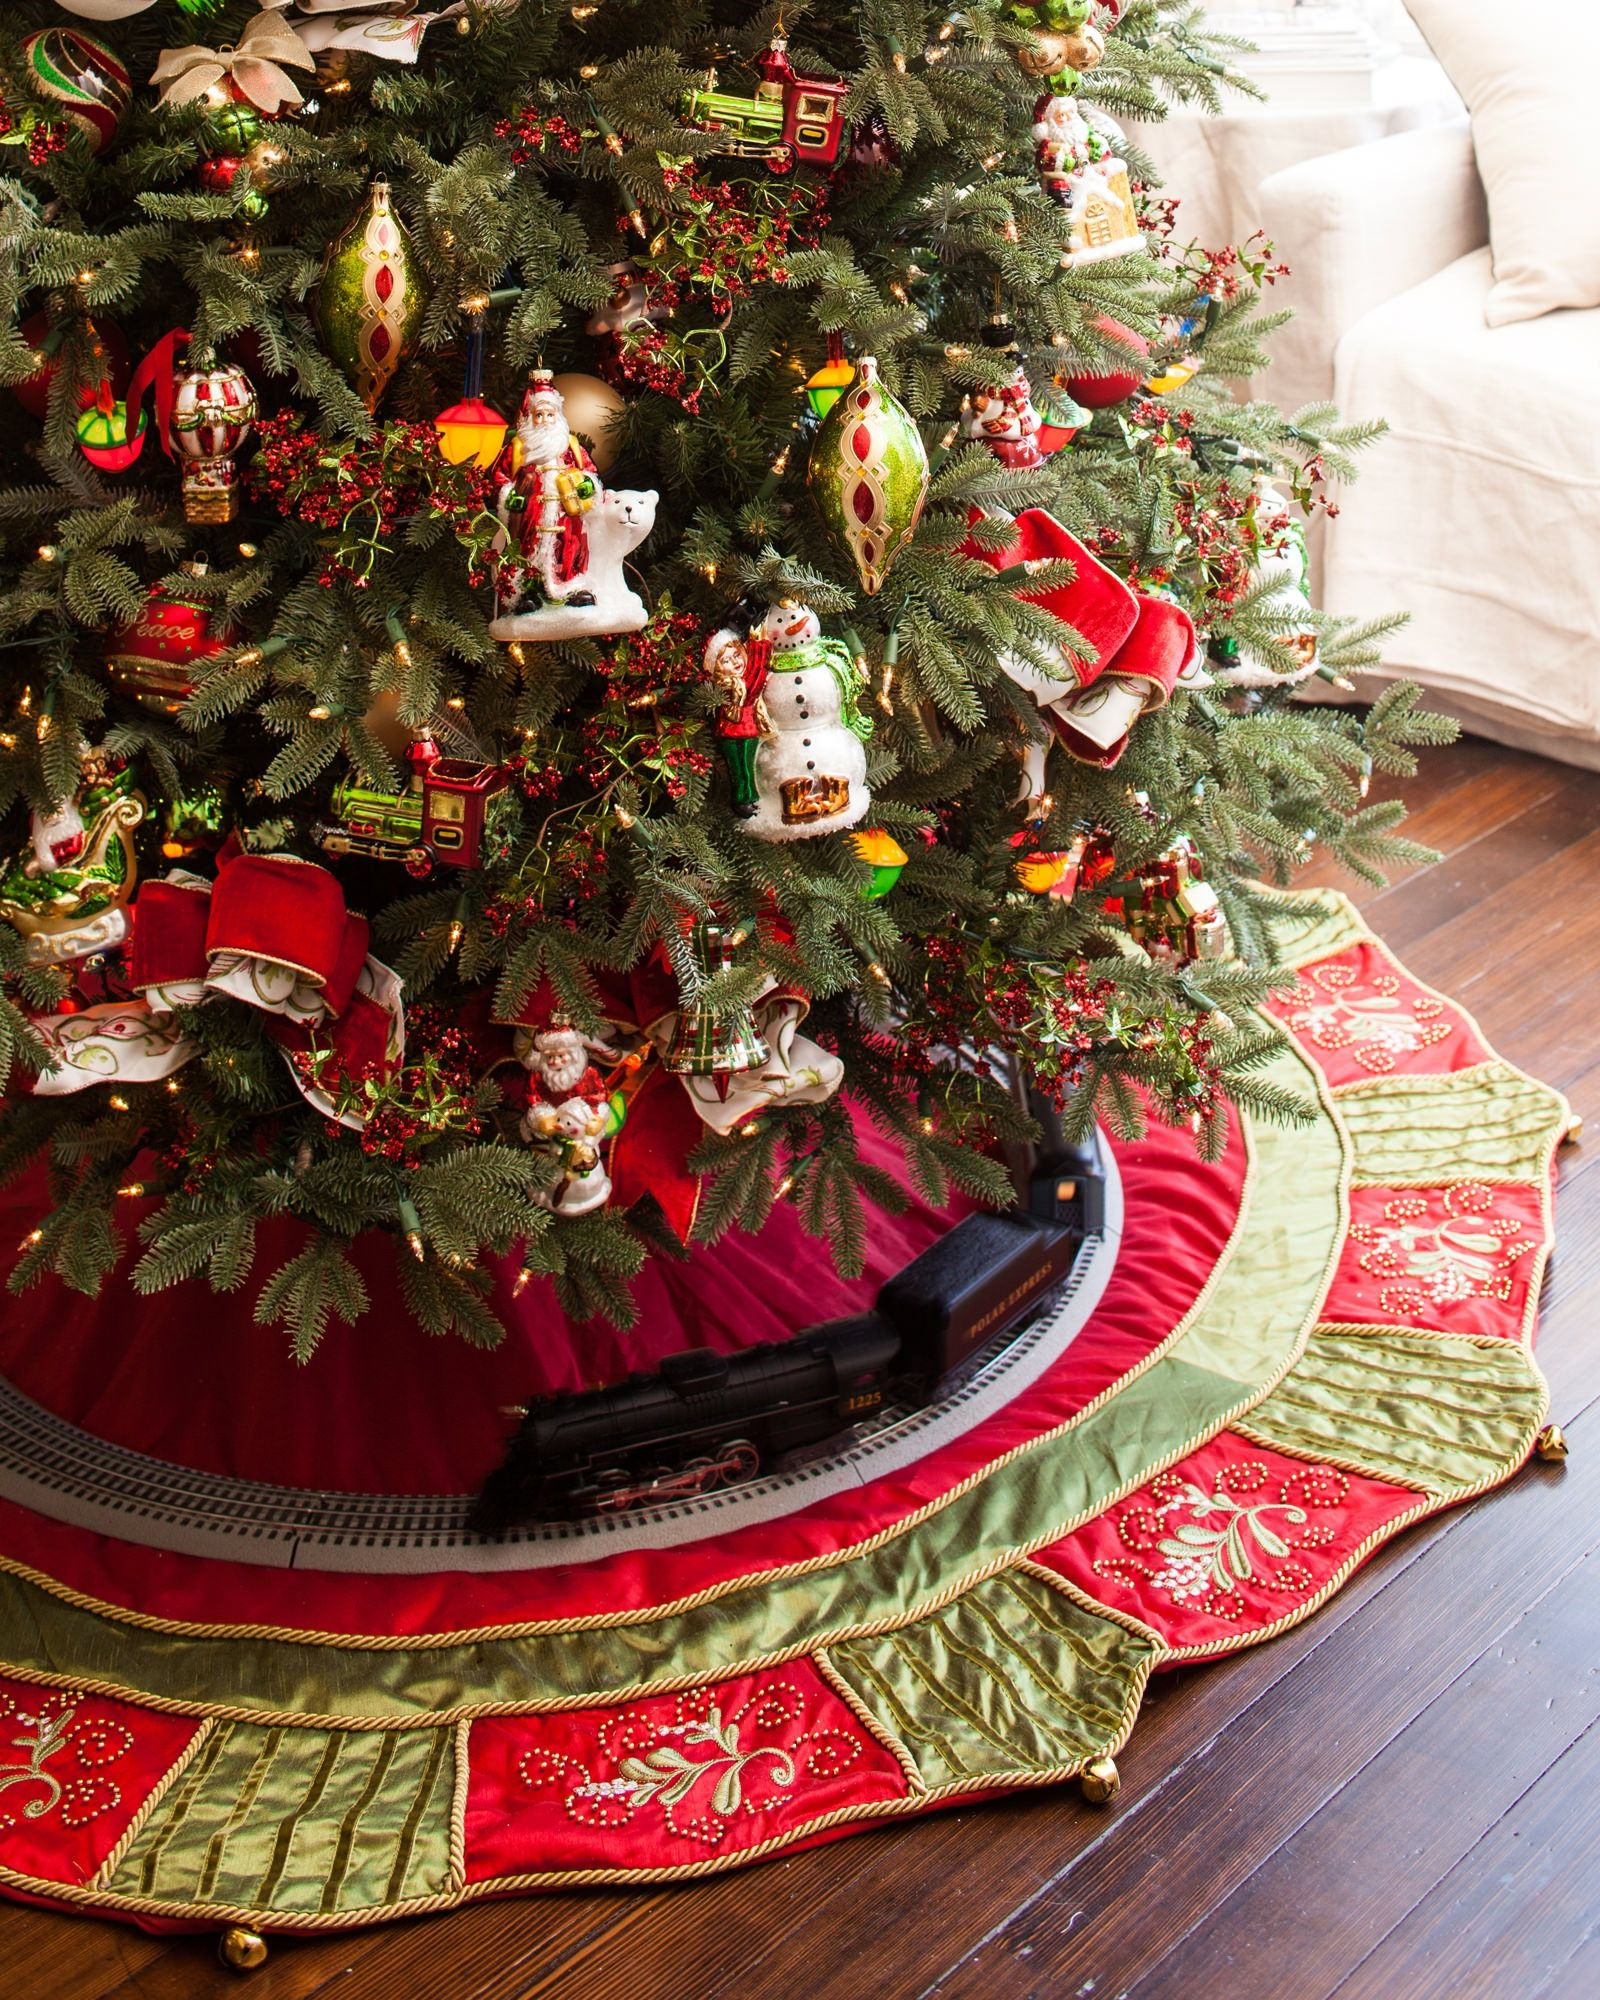 The Mistletoe And Holly Tree Skirt Is A Stunning Accessory That Elegantly Combin Large Christmas Tree Realistic Artificial Christmas Trees Christmas Tree Skirt